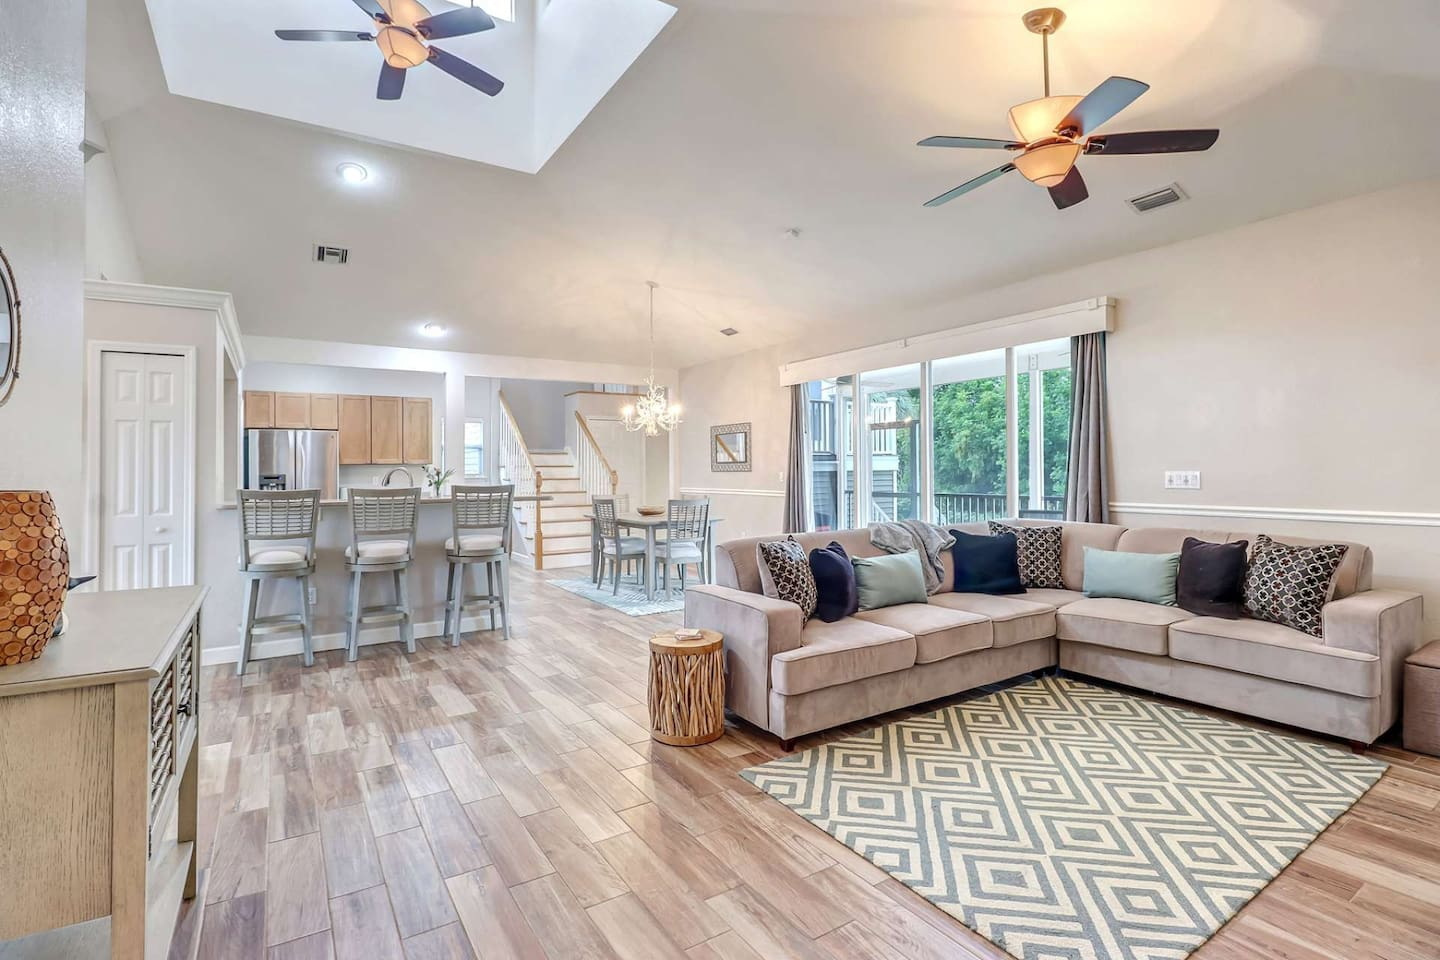 This freshly updated home is bright, modern, and full of gracious details ready to welcome you to southwest Florida!